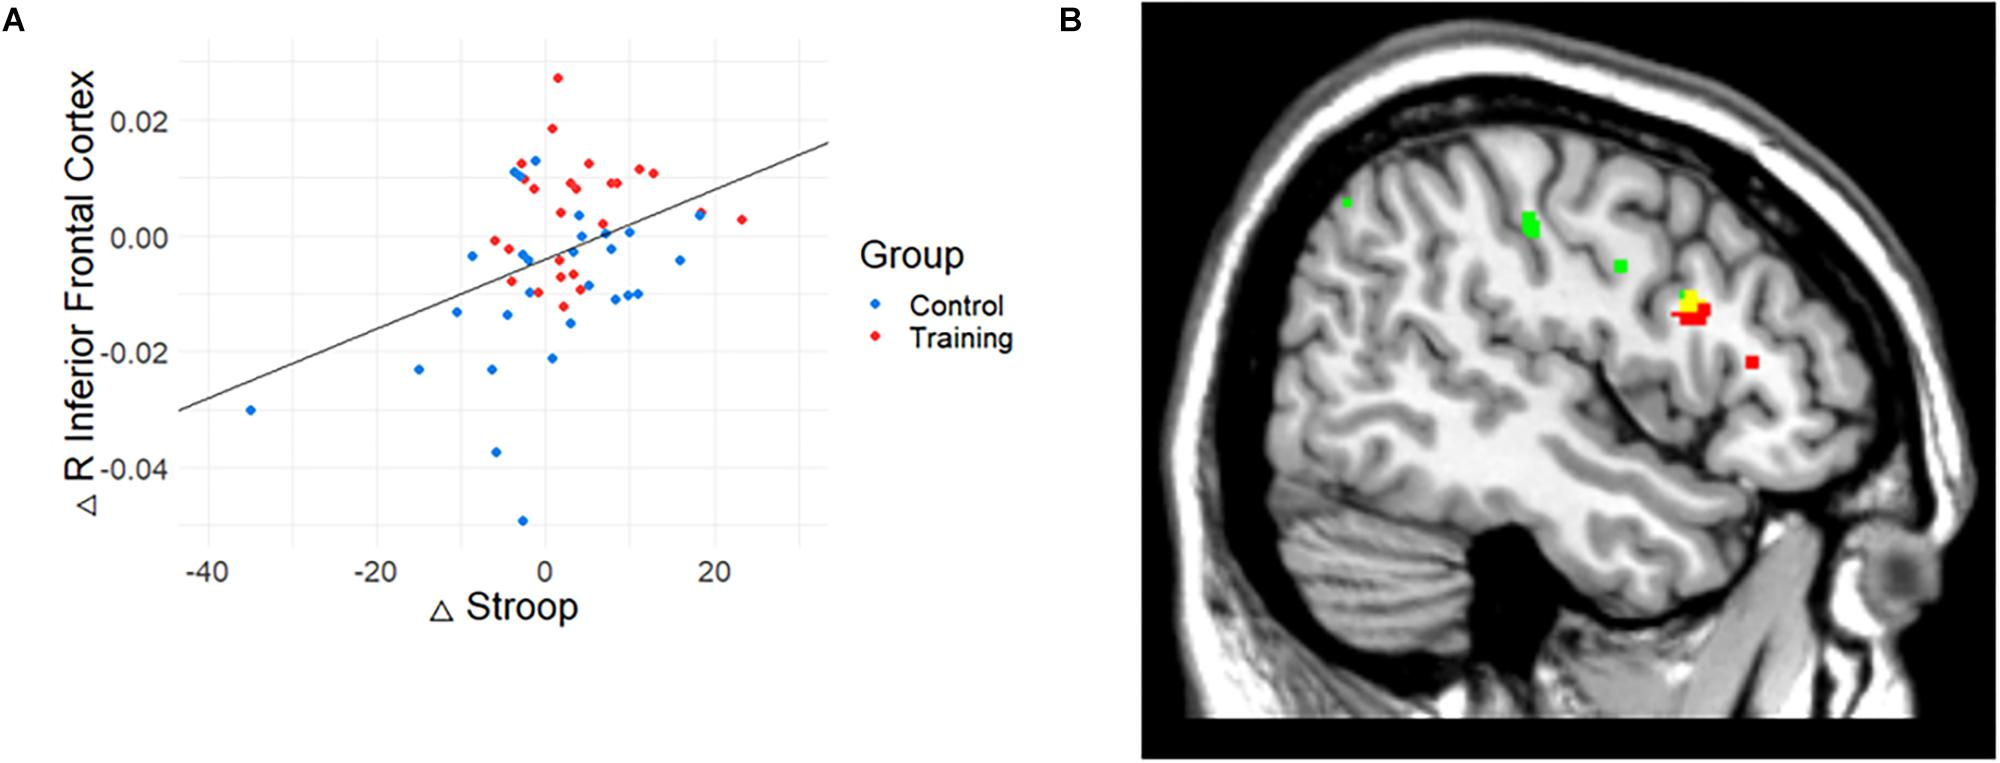 Frontiers | Parallel Changes in Cognitive Function and Gray Matter